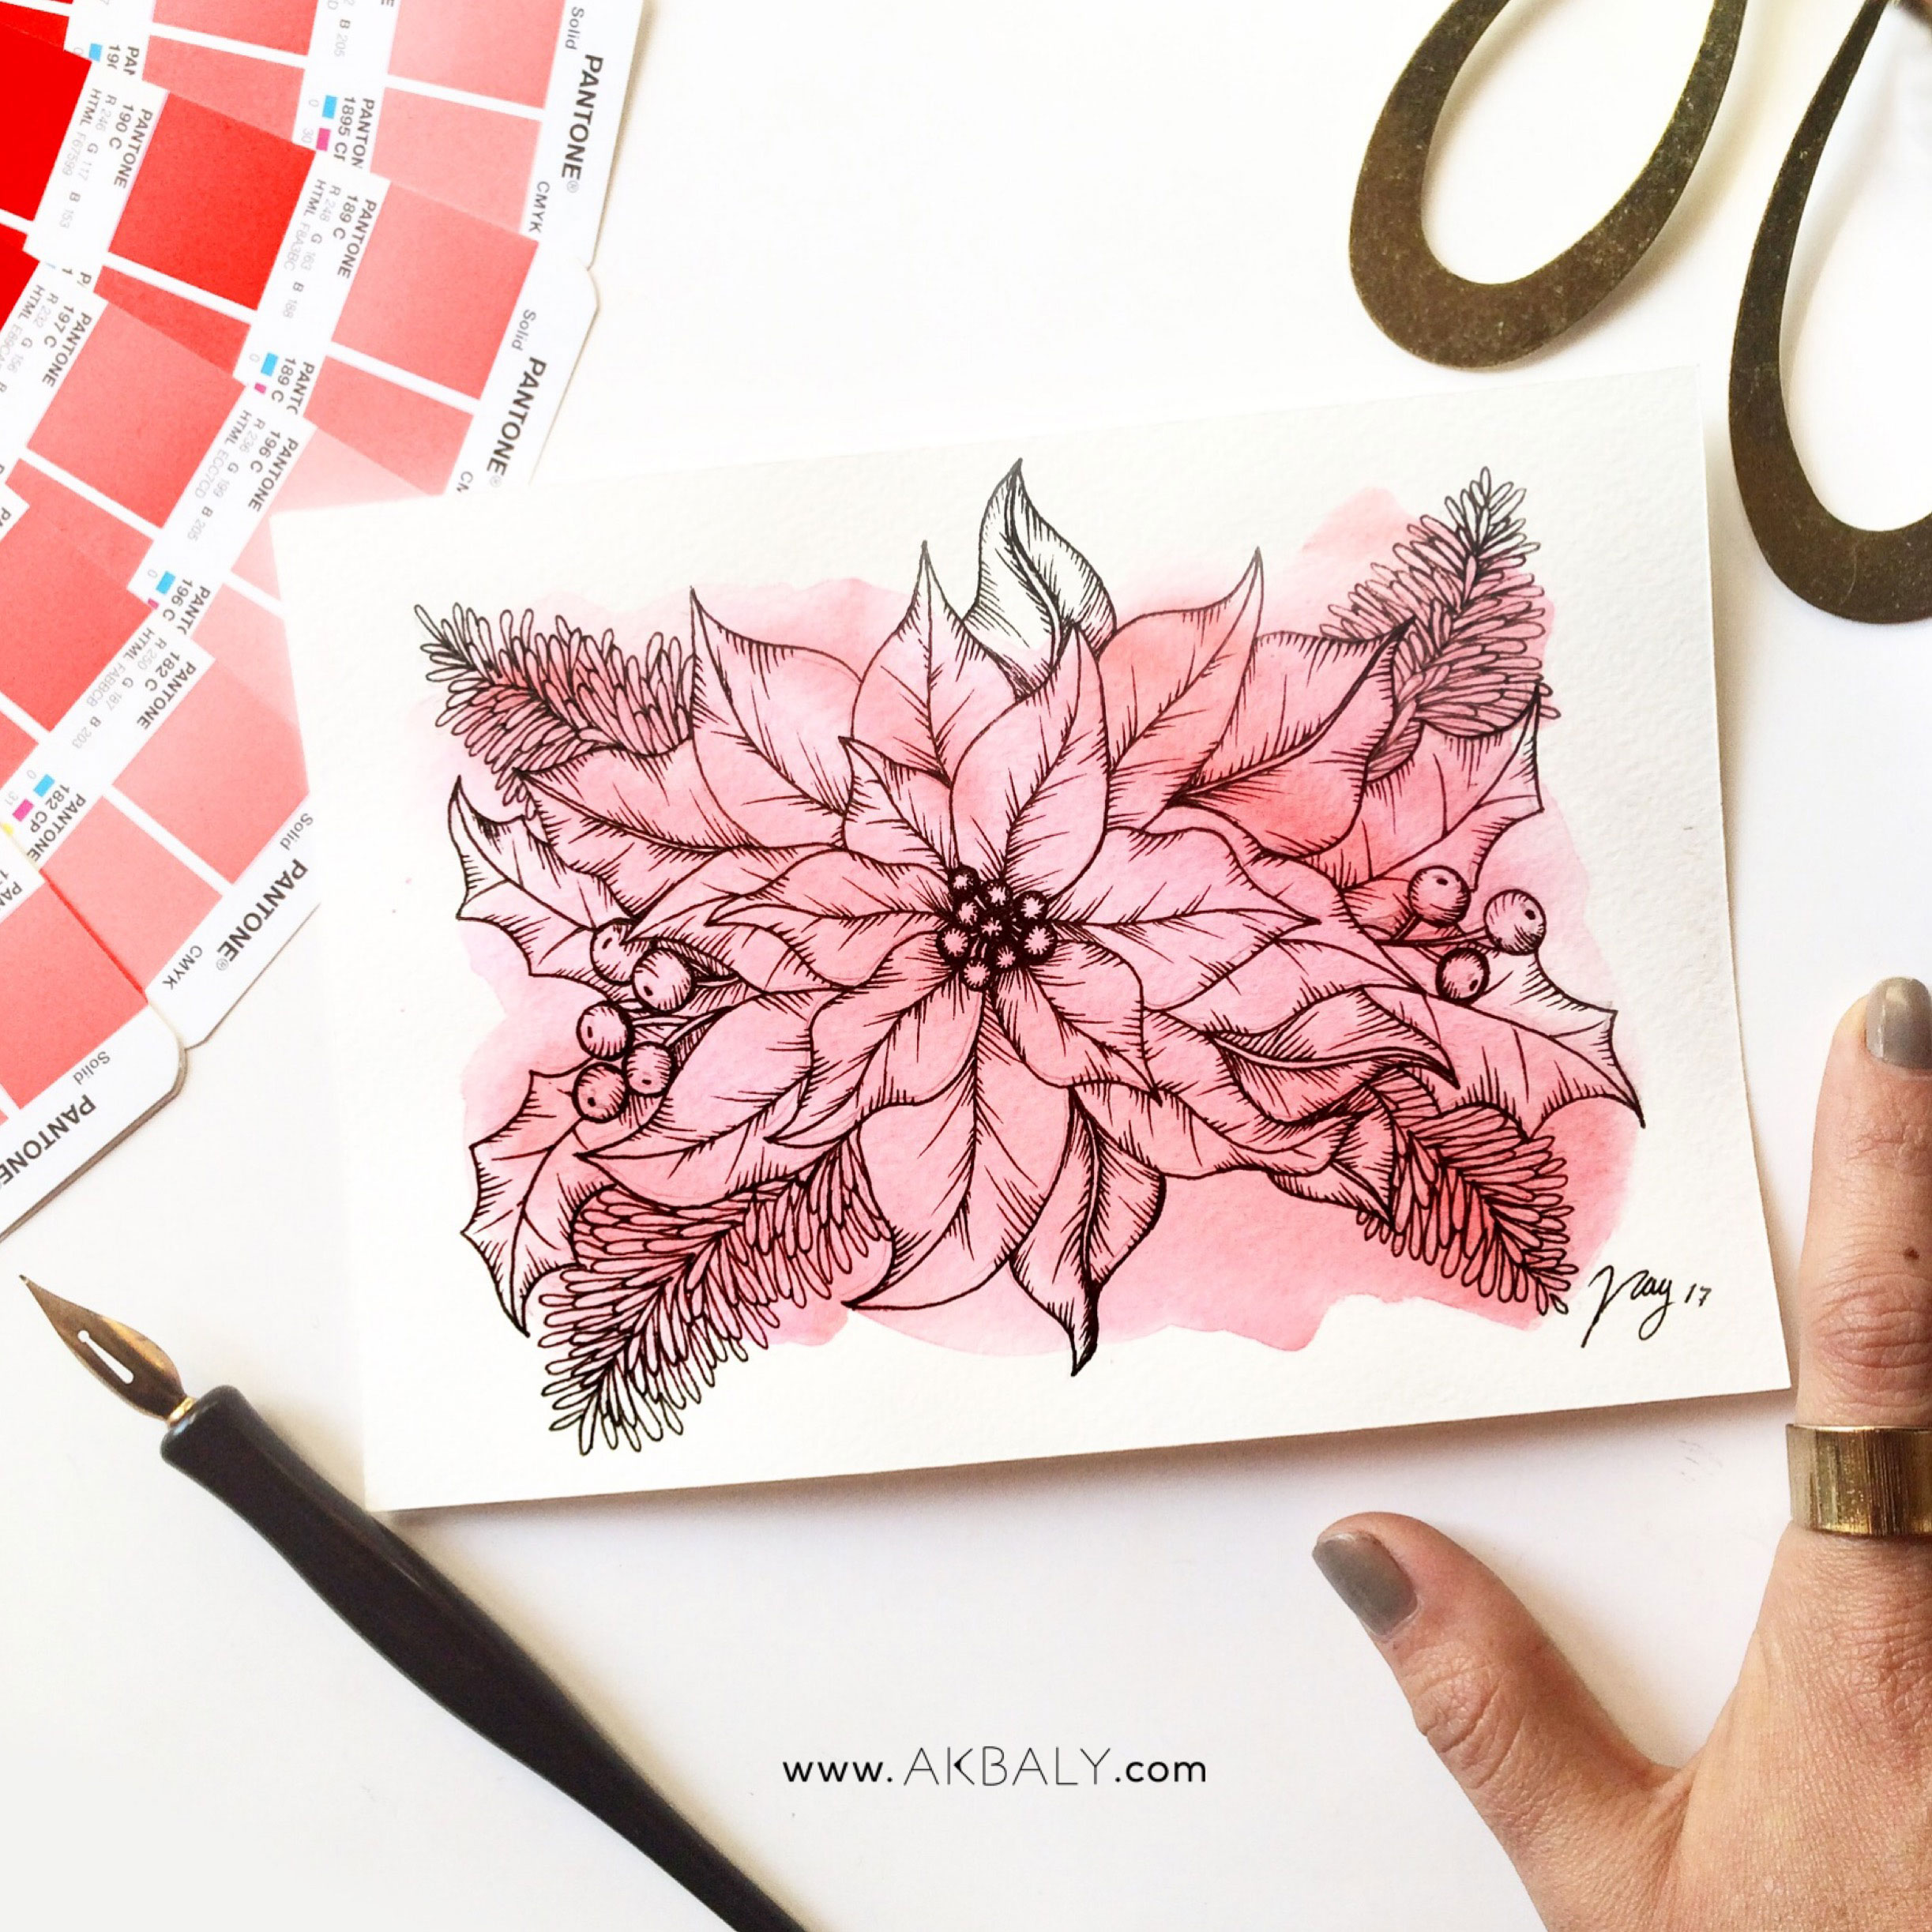 Illustration Christmas Collection Floral Poinsettia Prints Postcards Ink Watercolor Flower Tradition